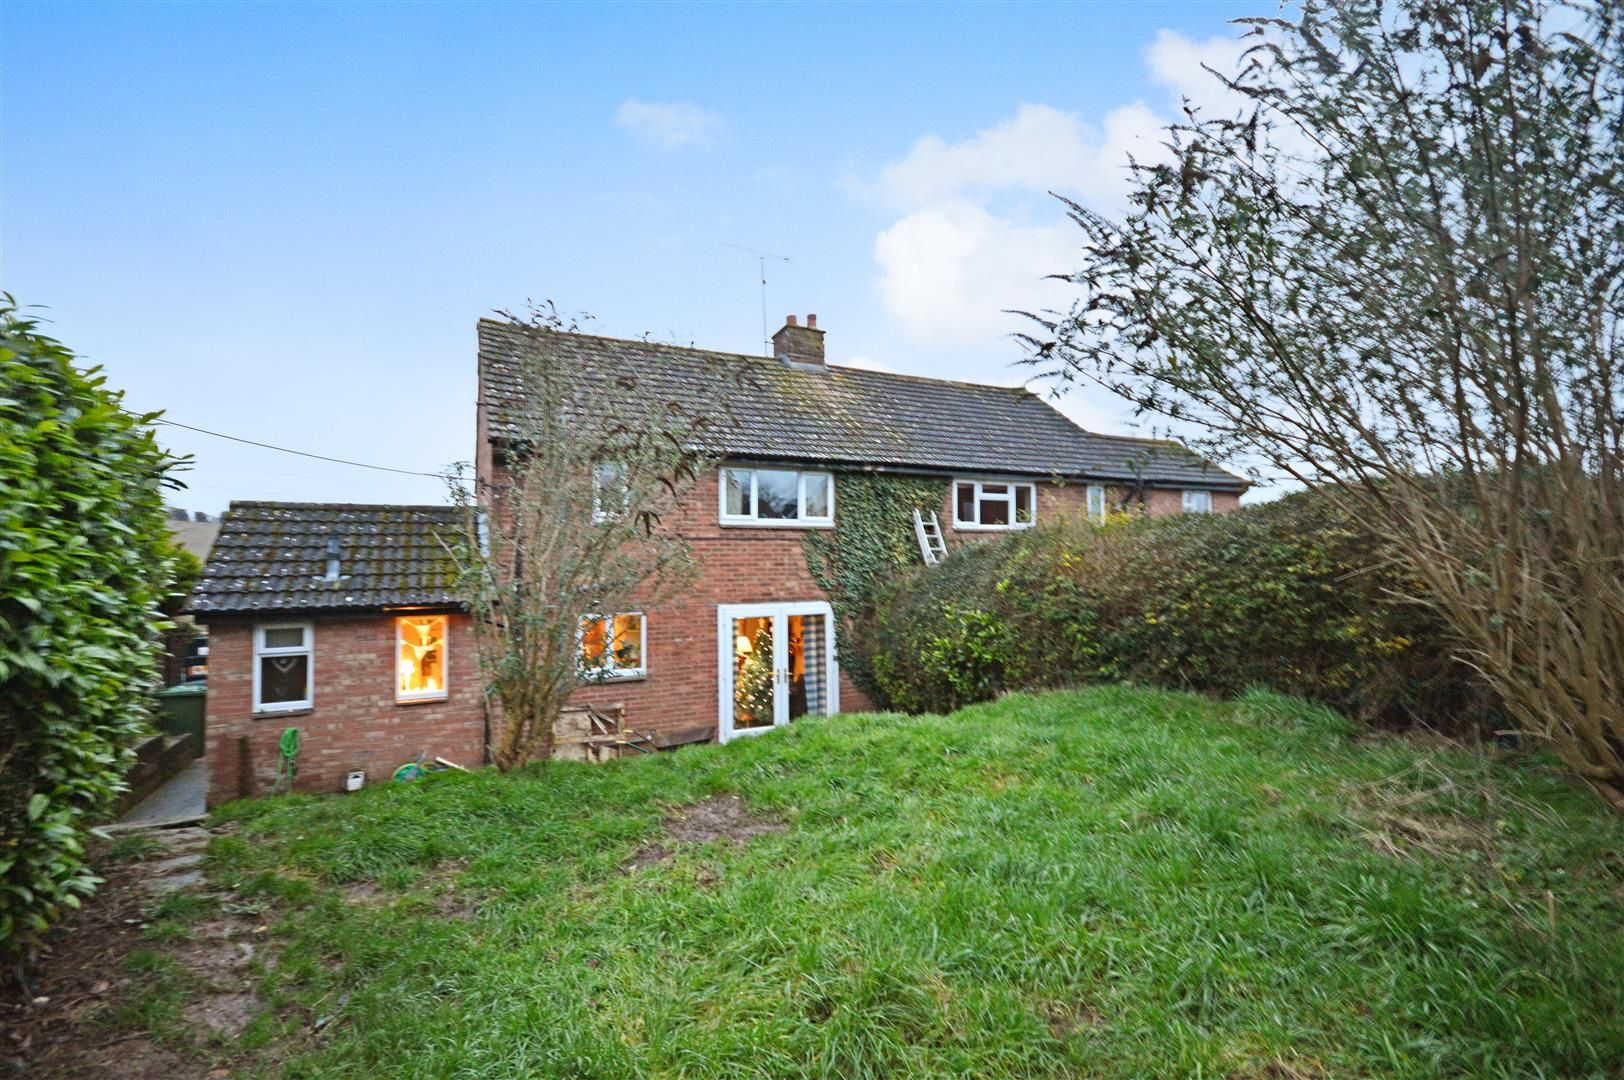 3 bed semi-detached for sale in Much Birch 12